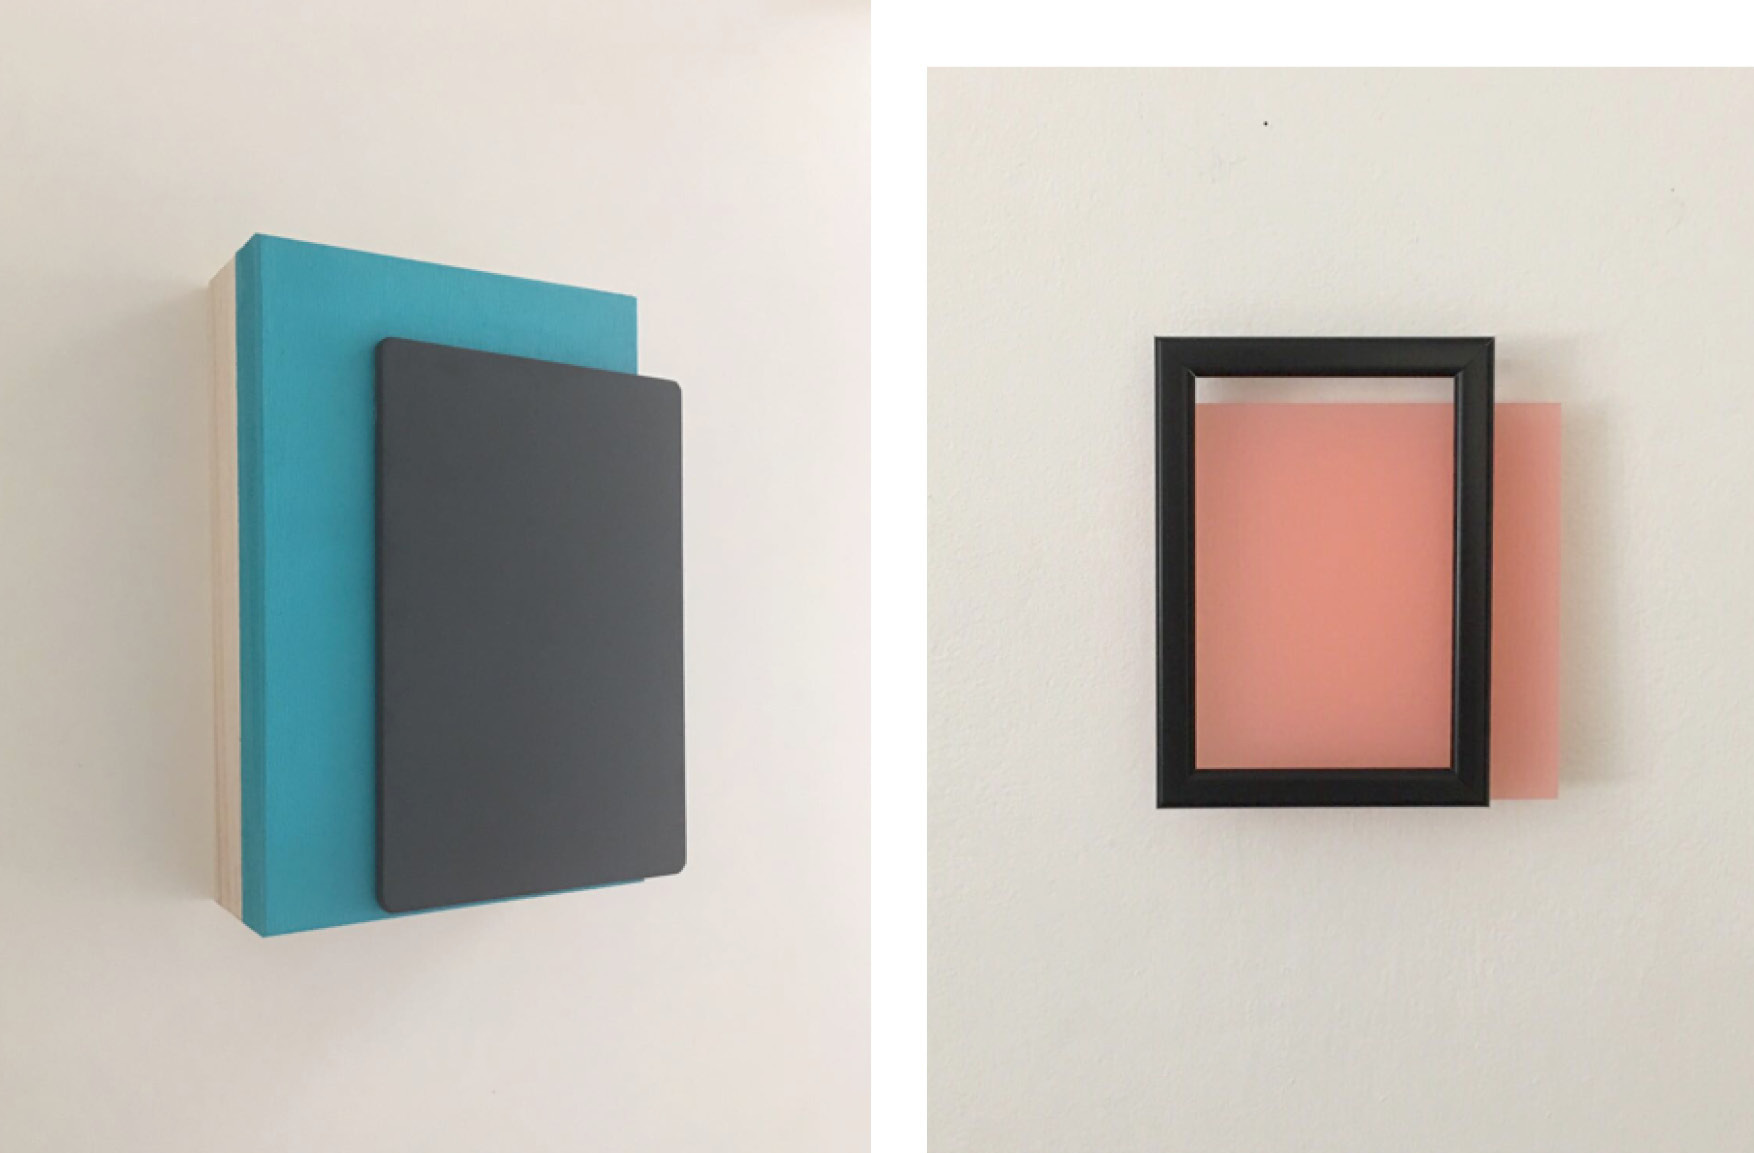 Blue (Triptych), 18.7 x 12.8 x 3.5 cm (2017) Acrylic and slate board on handmade Japanese wooden box (l) and Eirōneía, 17 x 15 cm (2017)  Black wooden frame and plexiglass (r)